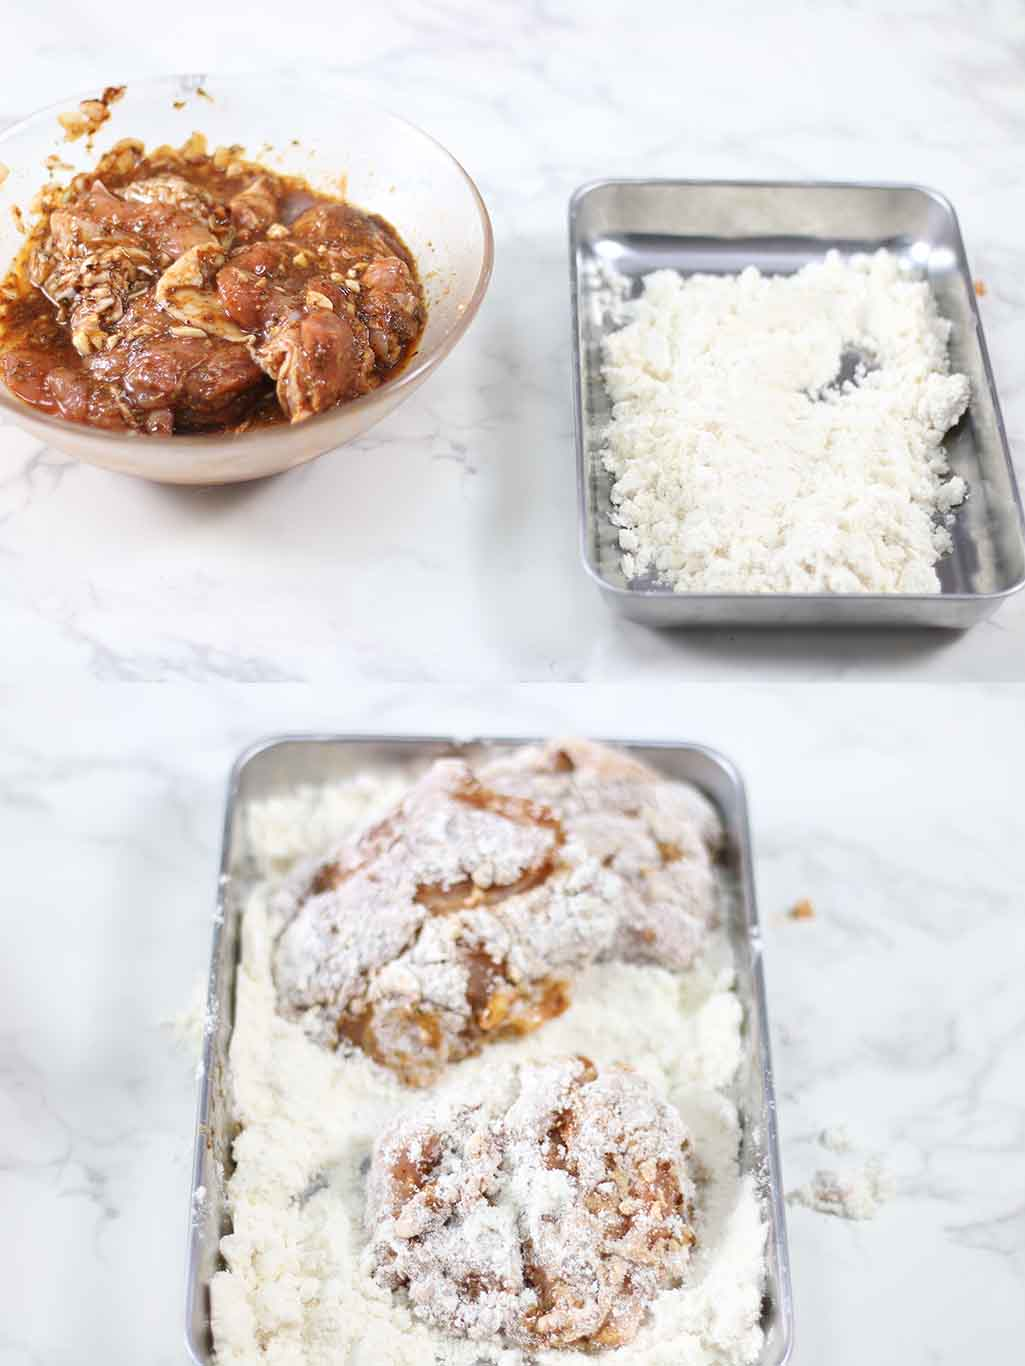 Steps showing how to bread low carb fried chicken with whey protein isolate.